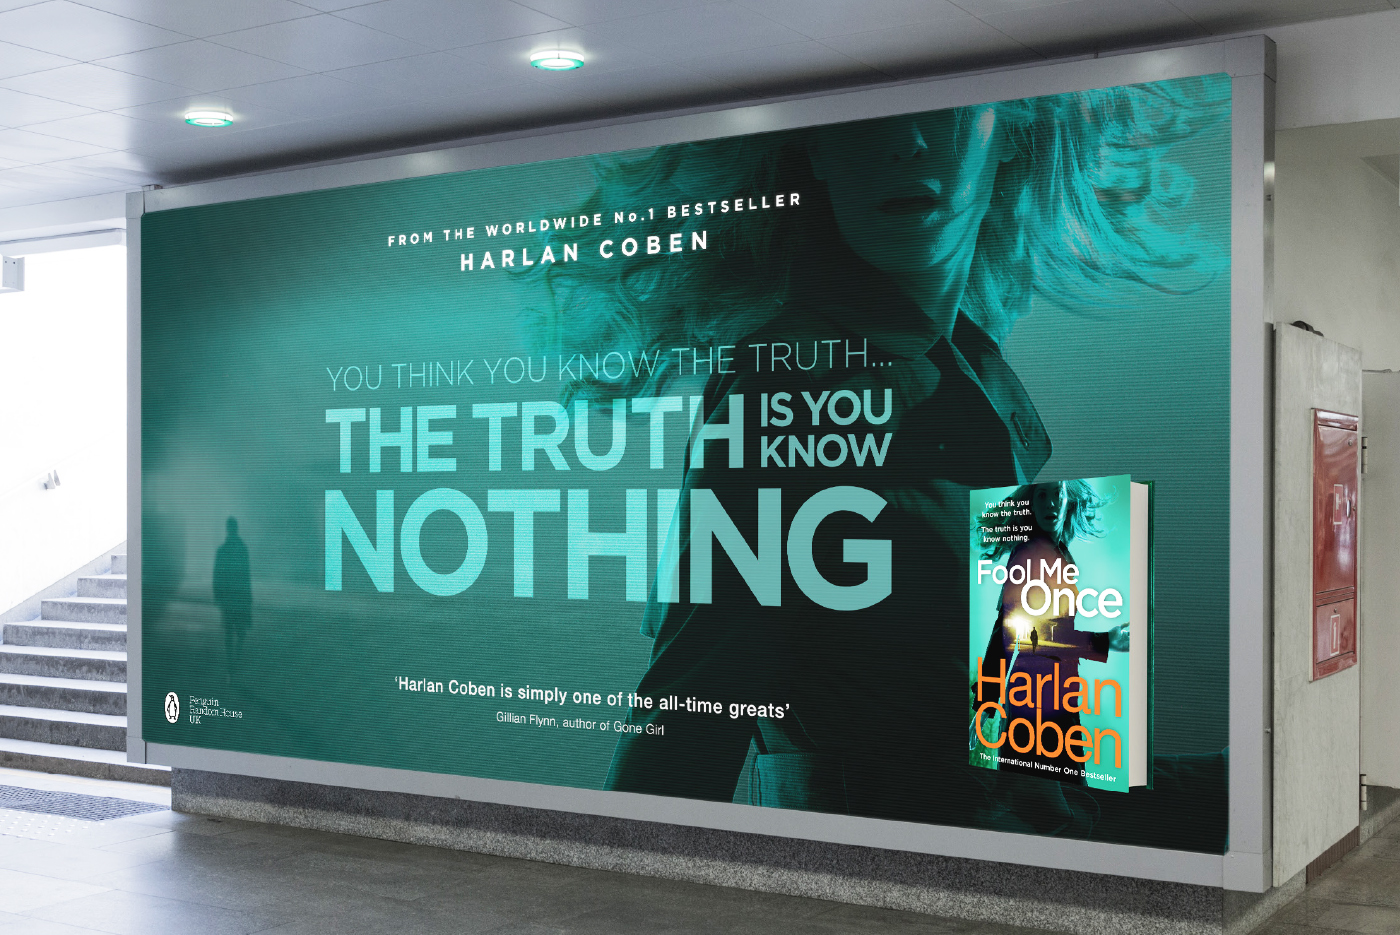 Penguin Random House Harlan Coben Fool Me Once Outdoor Advertising Campaign One Darnley Road 1